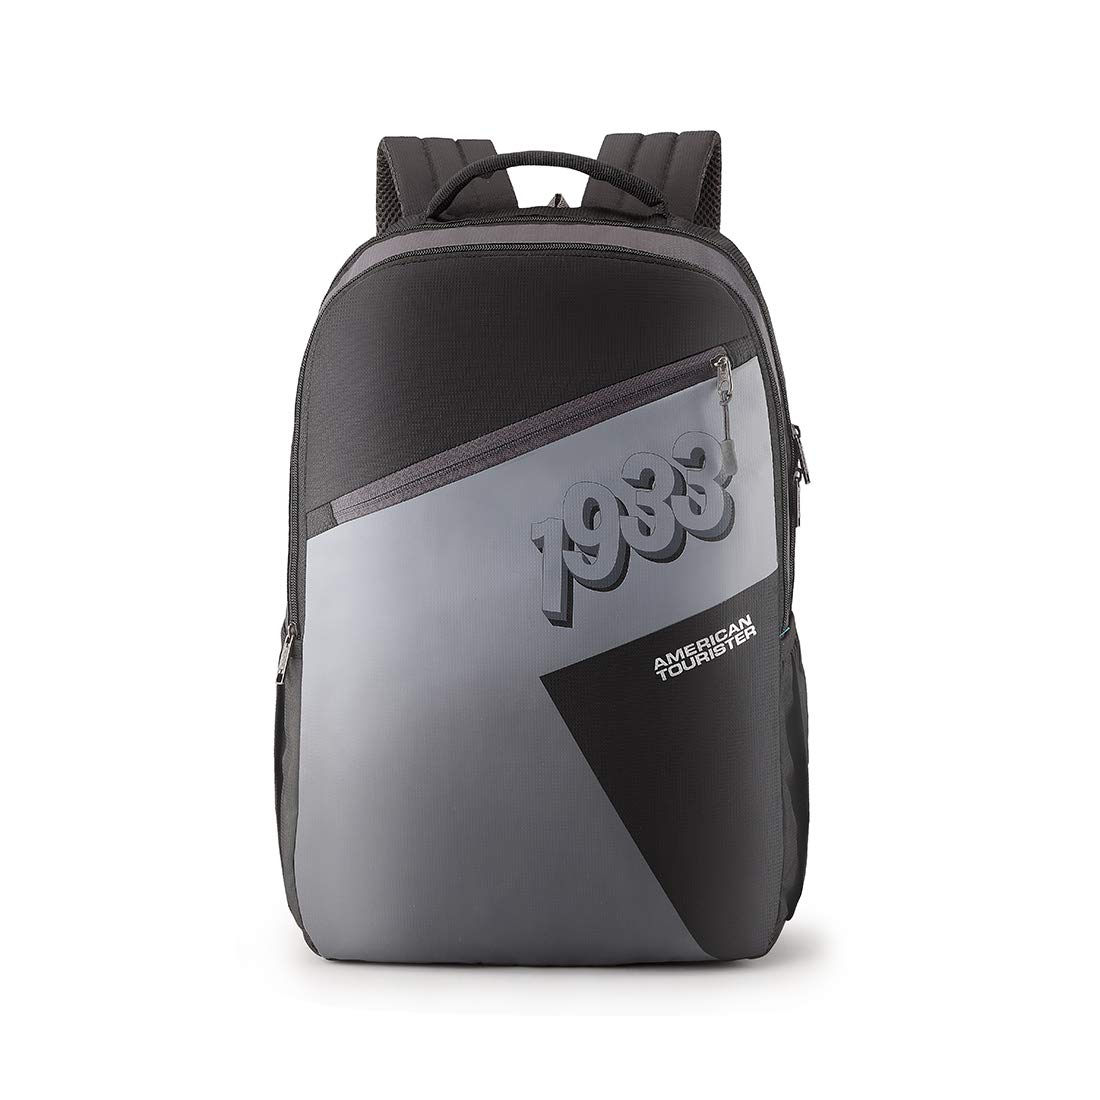 Lowest price American Tourister Casual Backpack